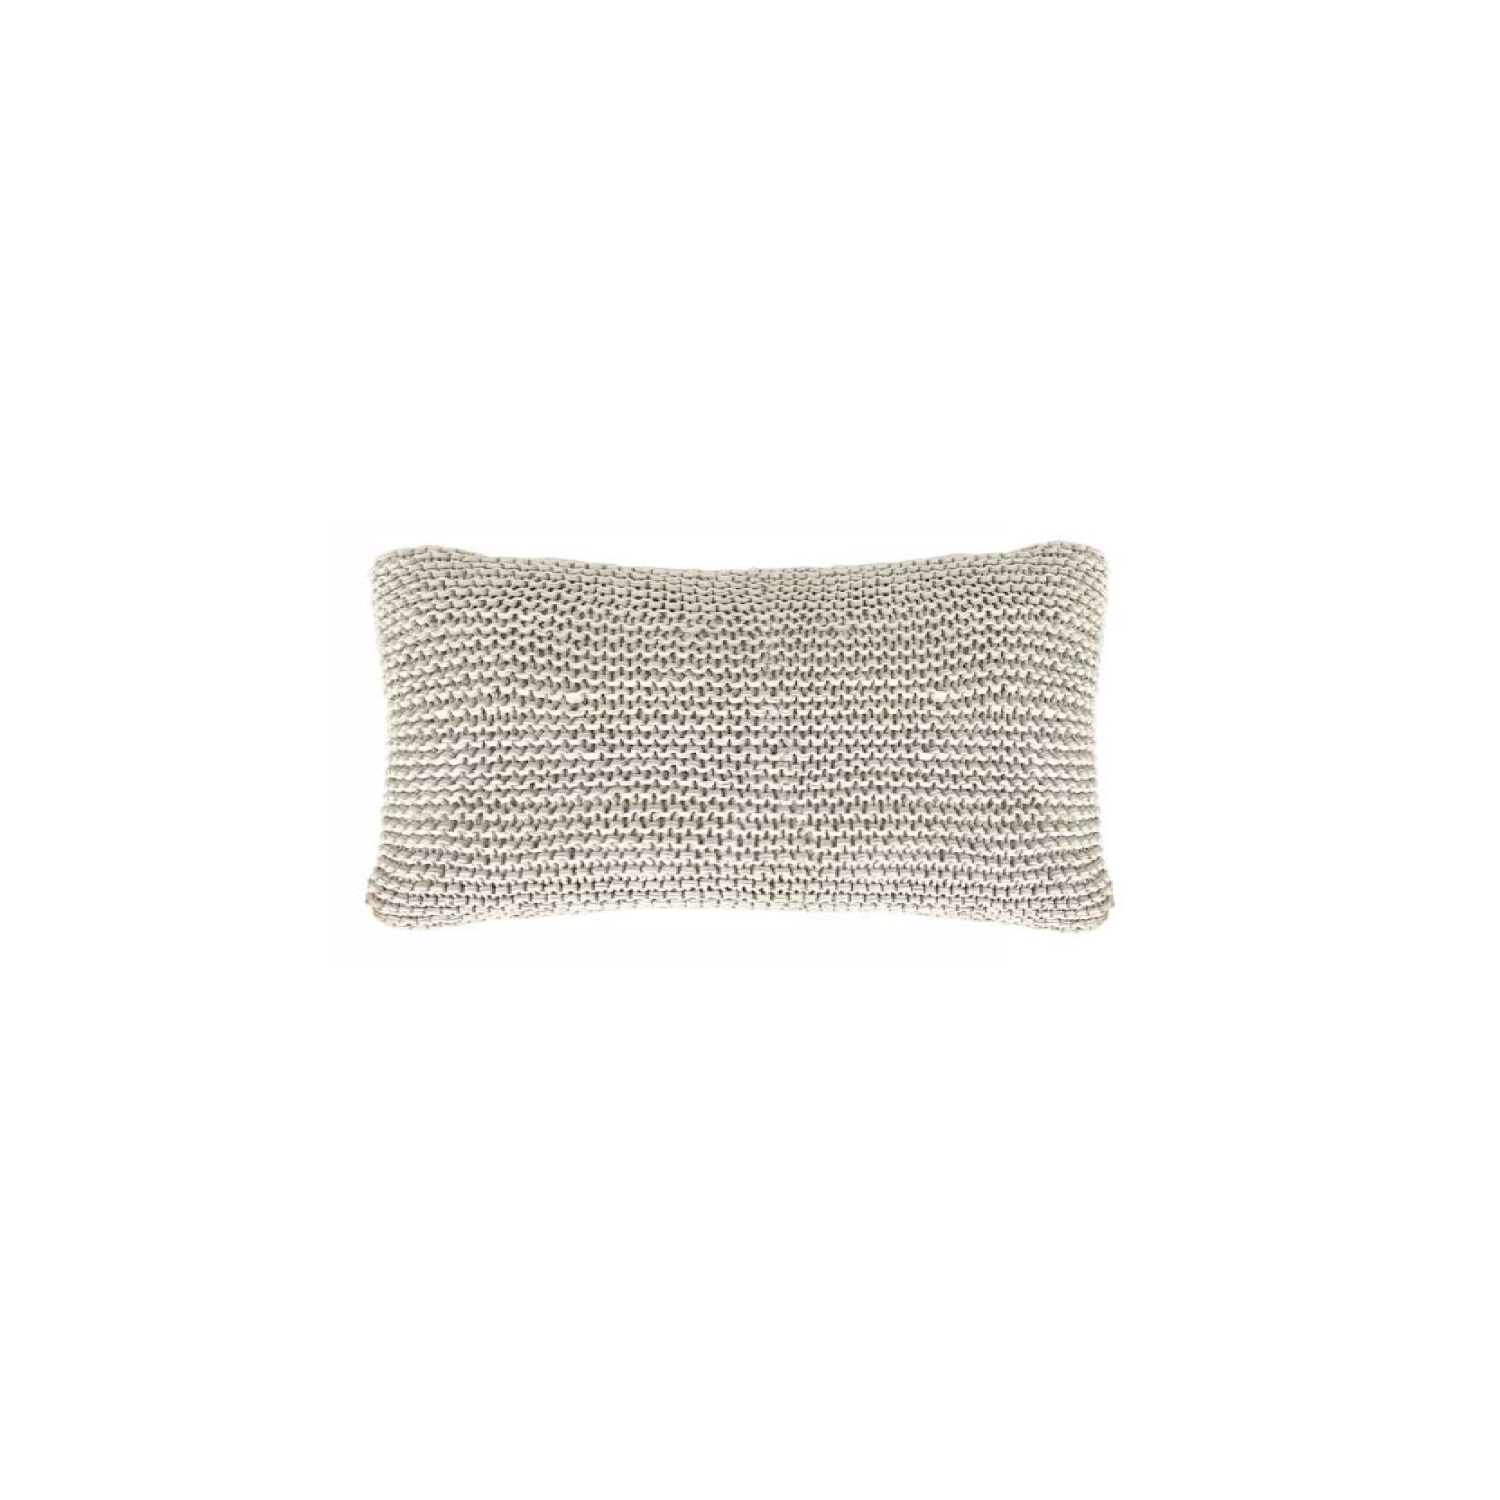 Amsterdam Knitted Cotton Cushion Small - The Amsterdam Line is carefully knitted within a trained community of women that found in their craft a way to provide for their families, each one of these cushions and throws is unique.  Elisa Atheniense Home soft indoors collection is made with natural cotton fibres, eco-friendly, handwoven or elaborated using traditional hand-loom techniques. The use of organic materials brings softness and comfort to the space. This collection combines their mission for responsible sourcing and manufacturing.  The hand woven cotton, washable cushion cover is made in Brazil and the inner cushion is made in the UK. All cushions come with Hollow Fibre filling. European Duck Feathers are optional upon request at an extra cost. Please enquire for more information and see colour chart for reference.   | Matter of Stuff